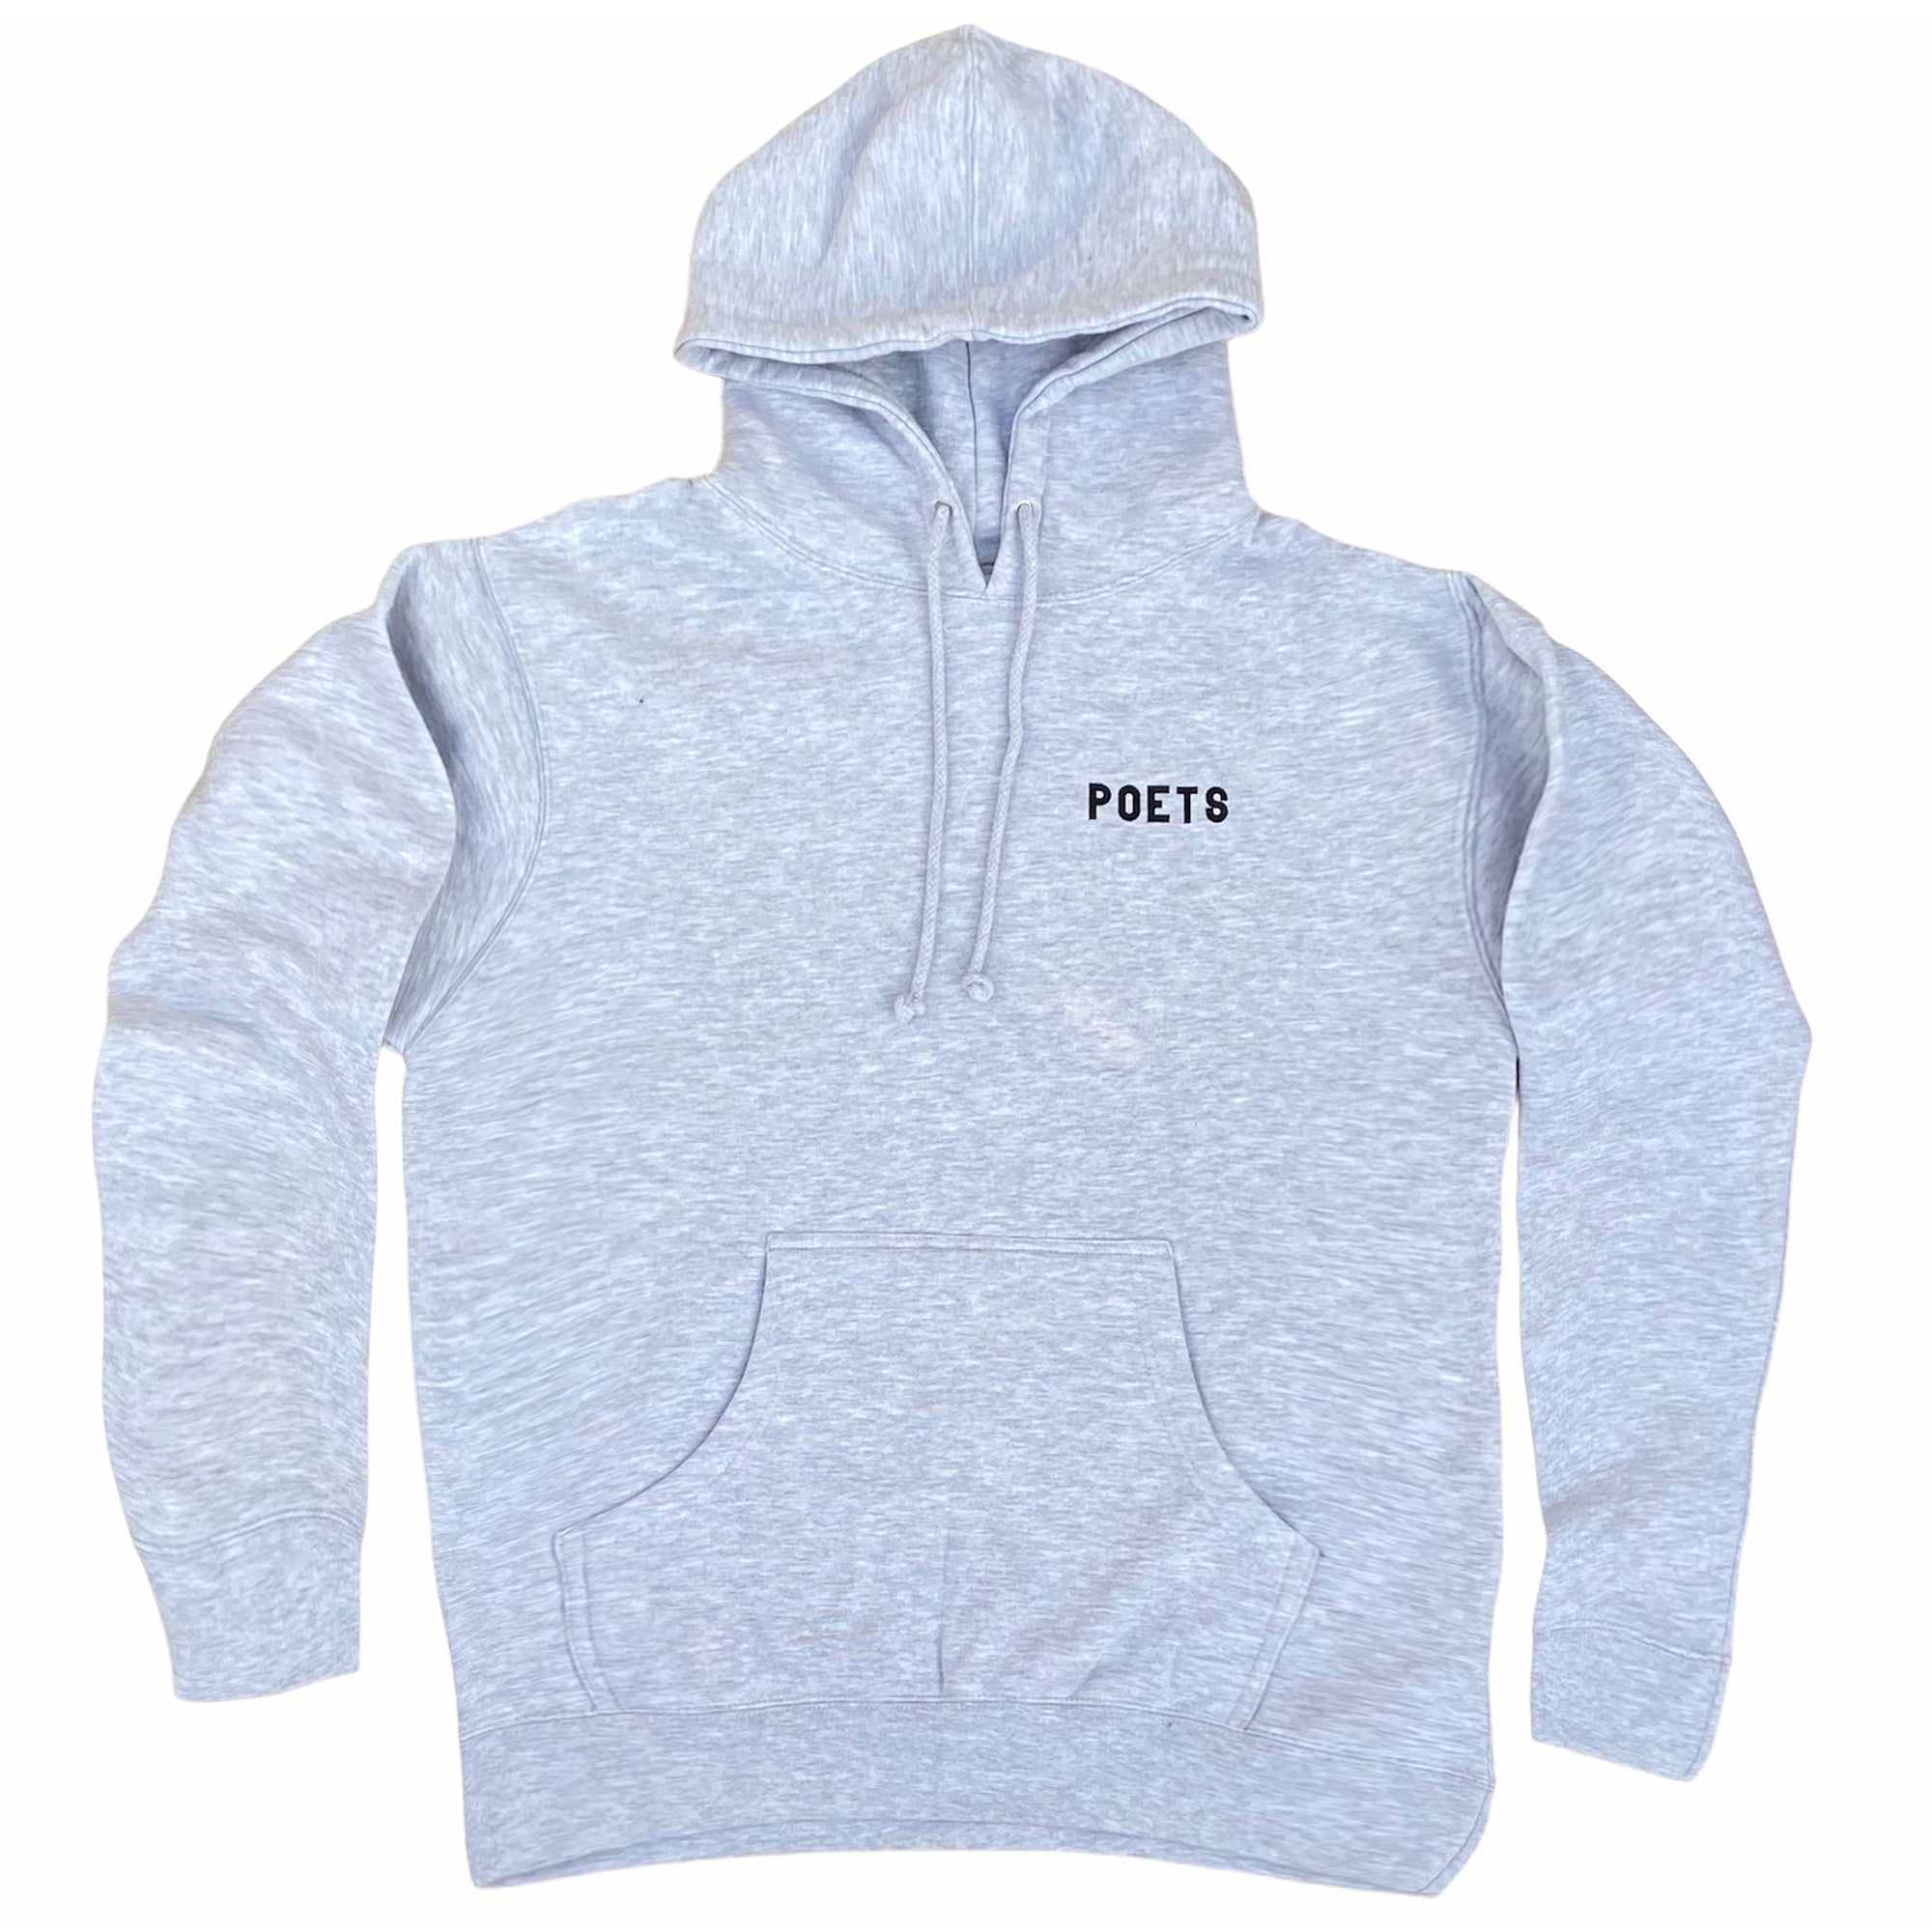 Poets Cuckoo Hooded Sweatshirt Heather Grey